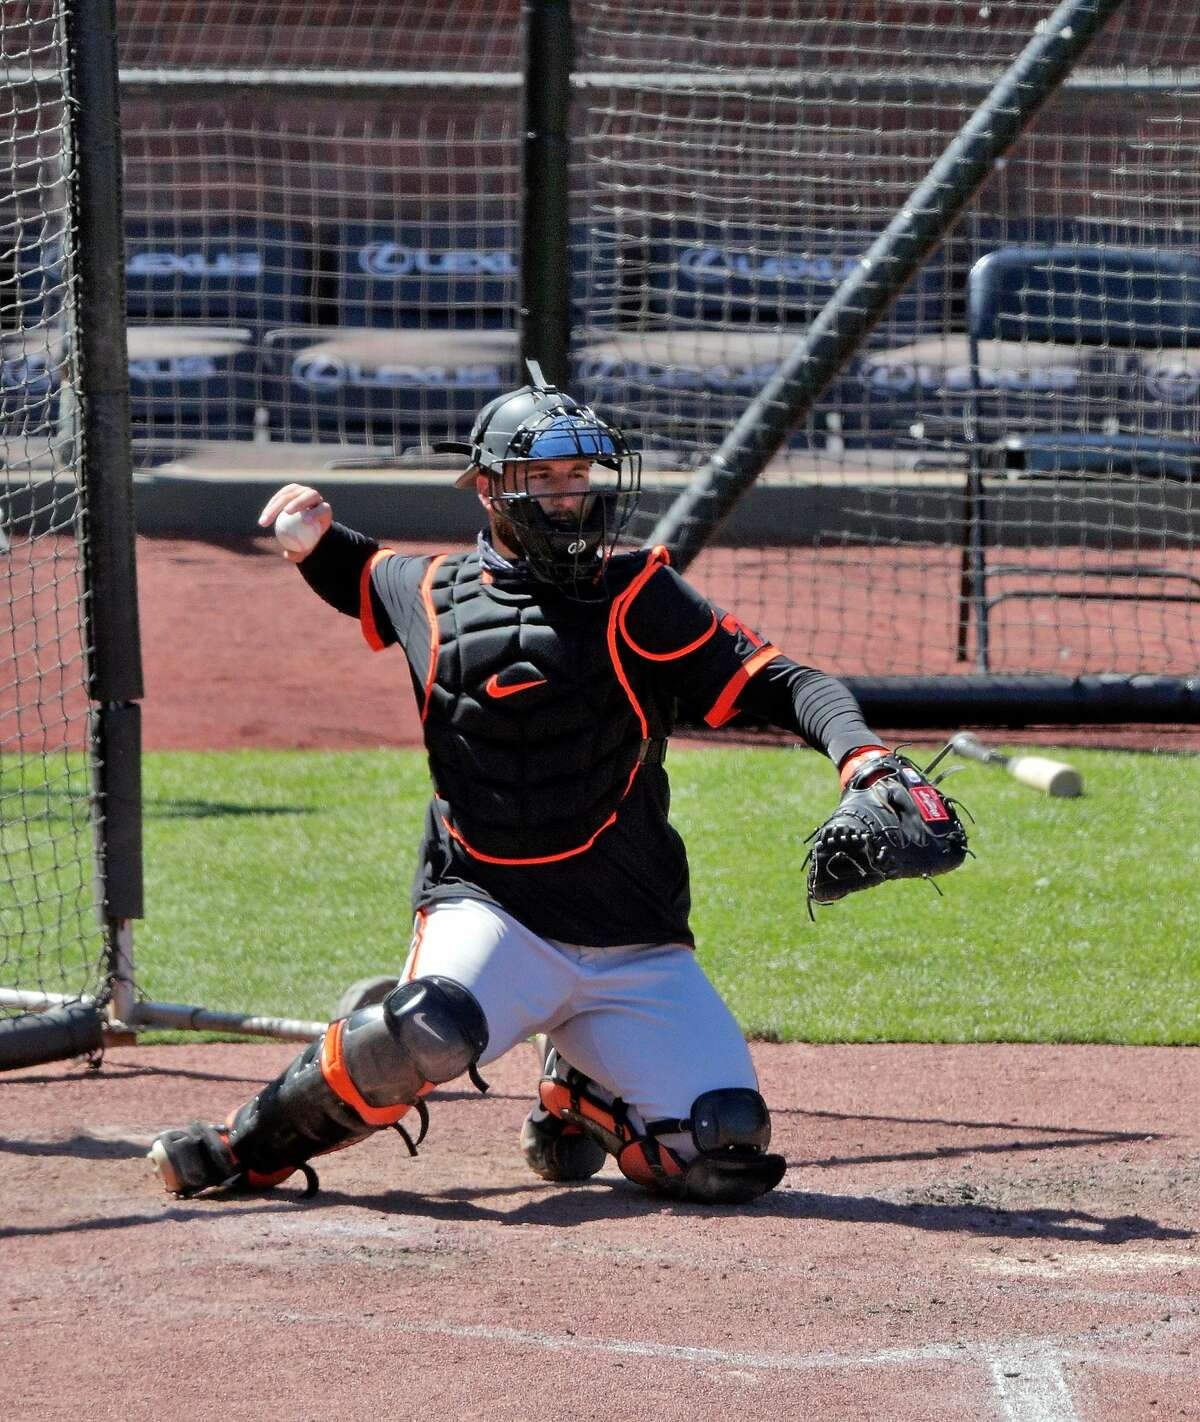 Giants catcher Joey Bart throws back to the pitcher between innings as the San Francisco Giants worked out and played a simulated game at Oracle Park in San Francisco, Calif., on Wednesday, July 8, 2020.